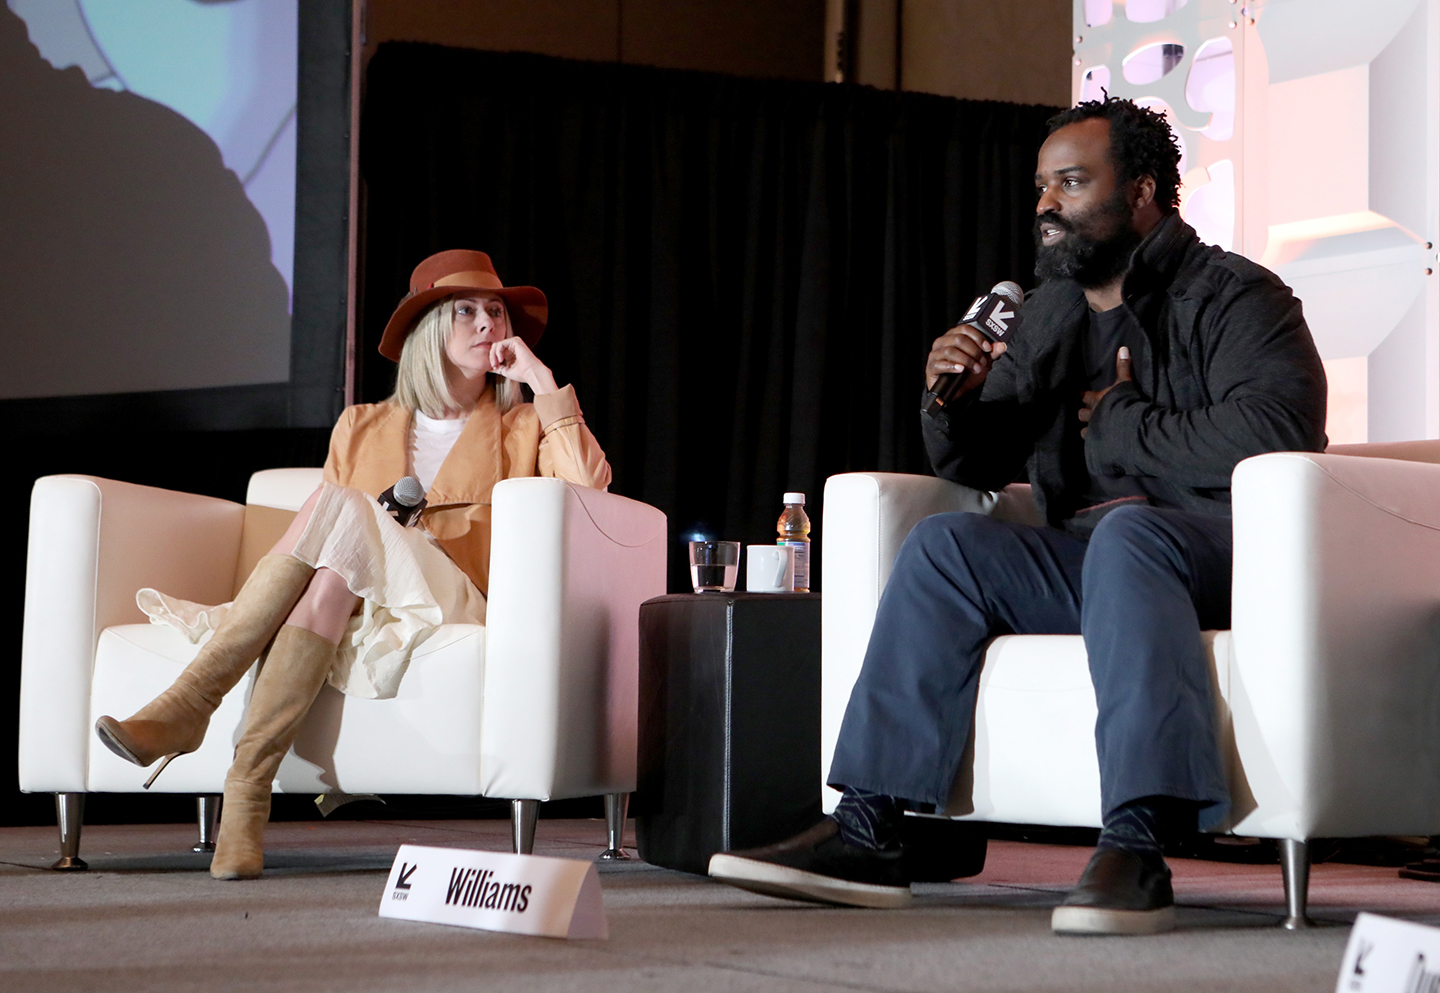 Linnea Miron and Ricky Williams at their Featured Session: Cannabis and Wellness: The Body and Beyond – Photo by Samantha Burkardt/Getty Images for SXSW